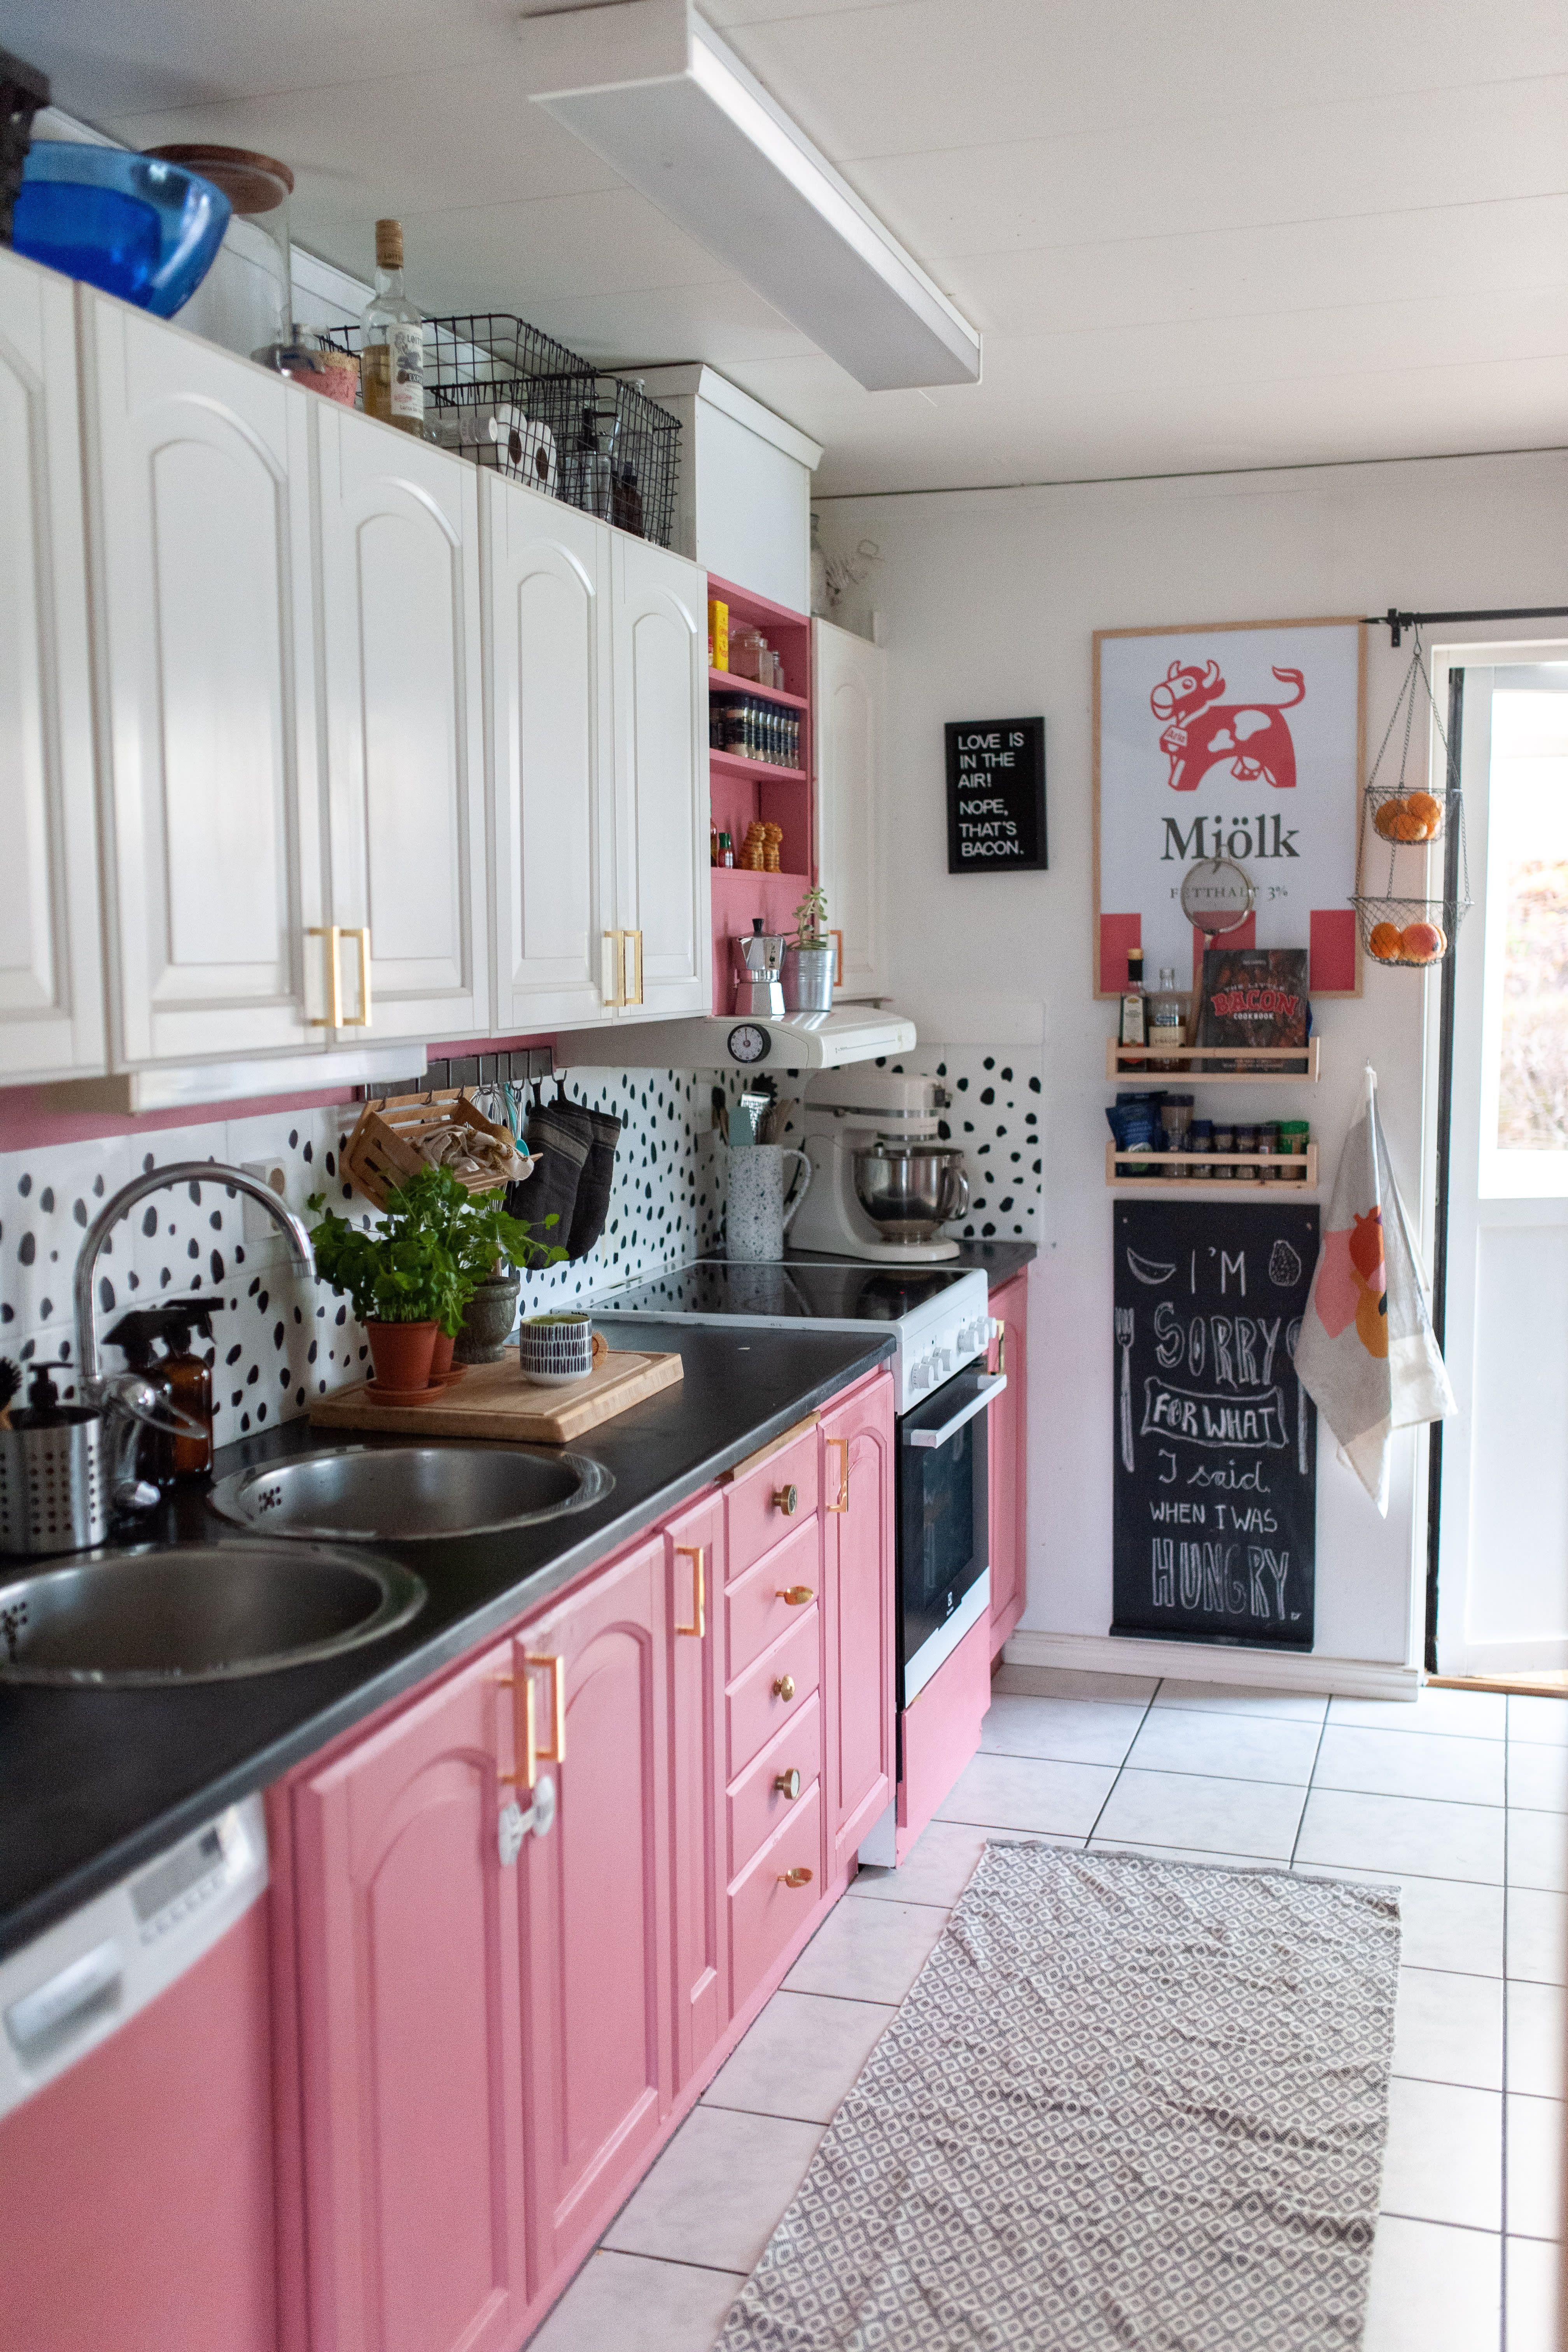 A Fun Swedish Home Has A Pink Kitchen And An Indoor Skate Ramp Kitchen Interior Kitchen Style Kitchen Remodel Cost